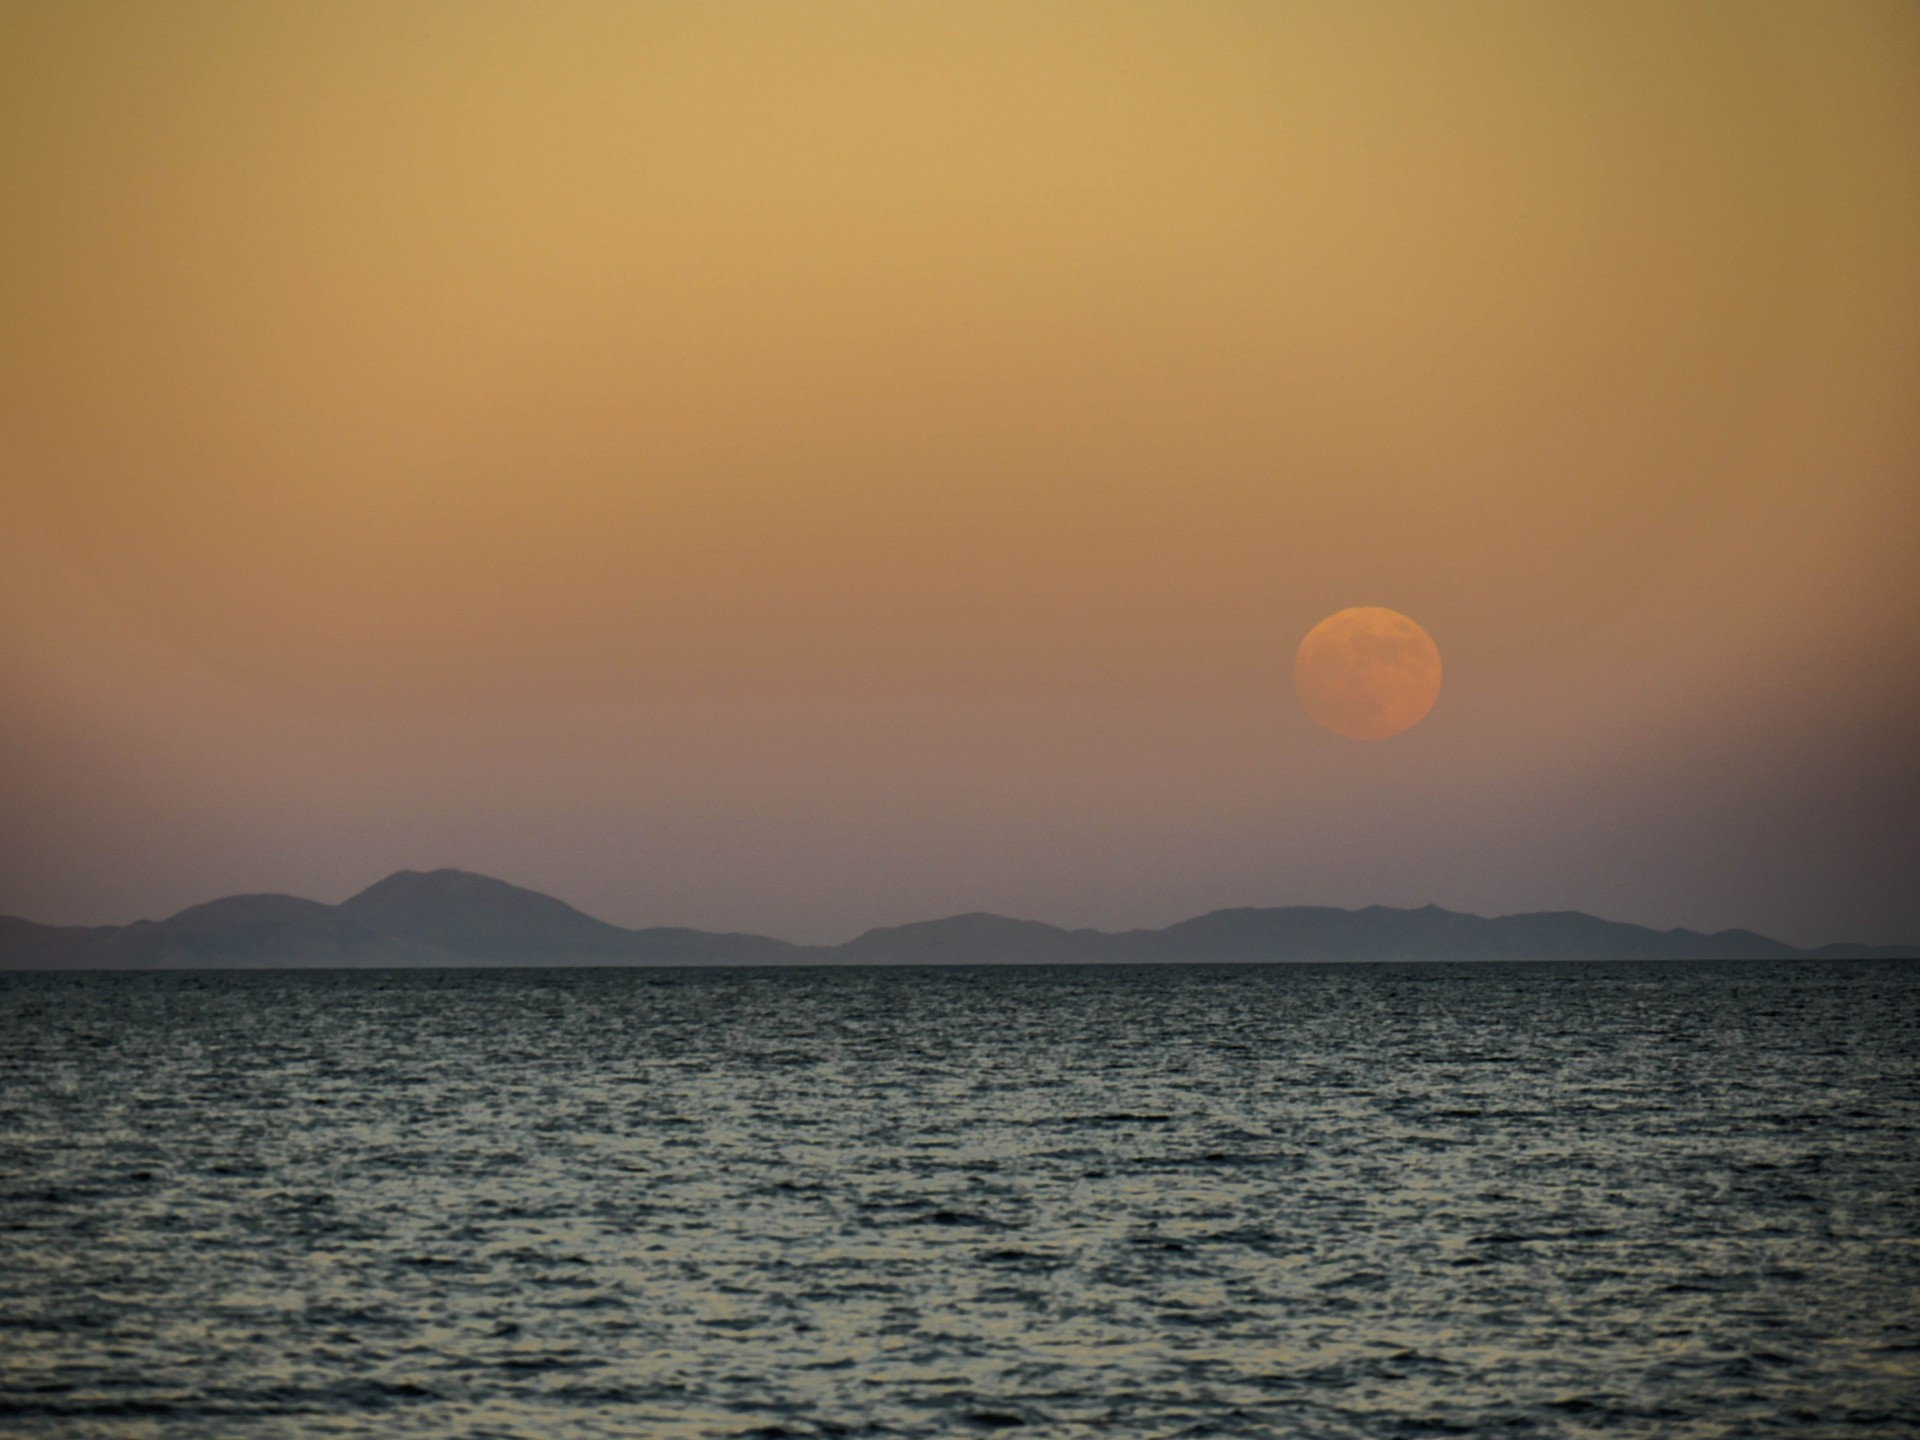 A full moon rising over the Bay.